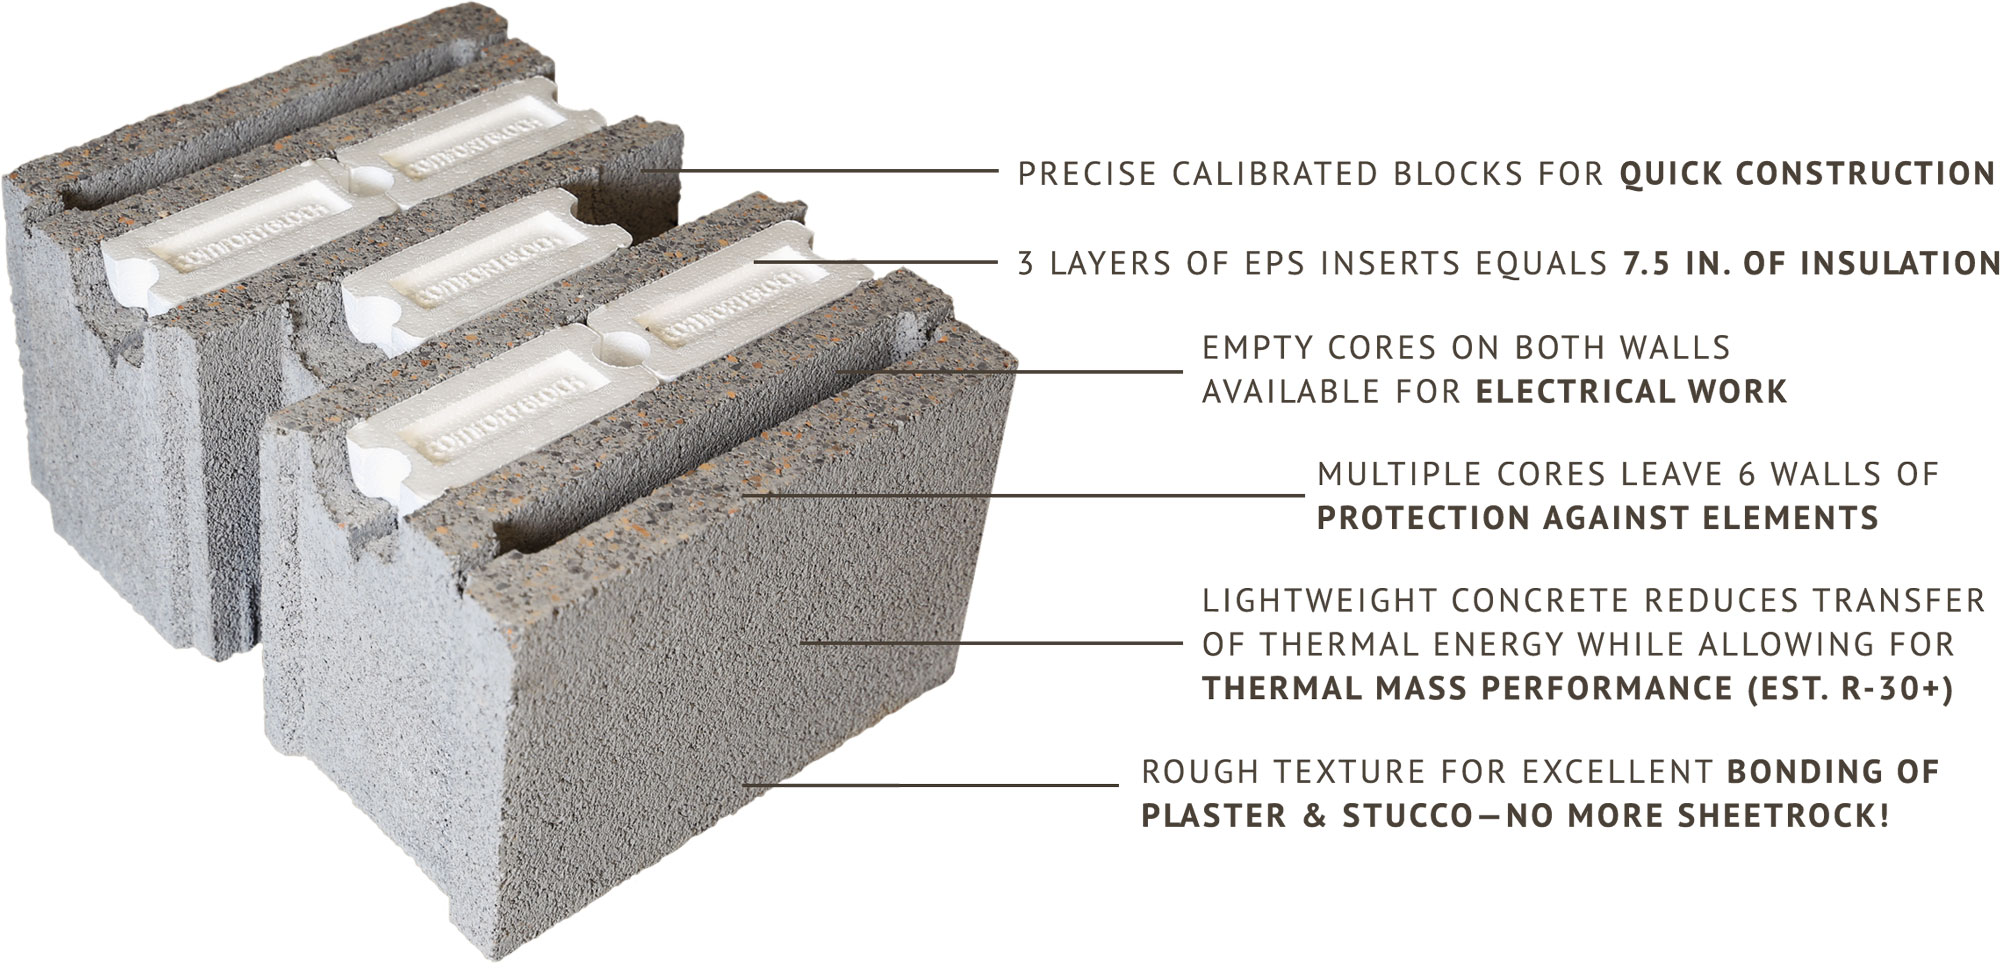 Concrete block wall system concrete construction for Insulated block construction